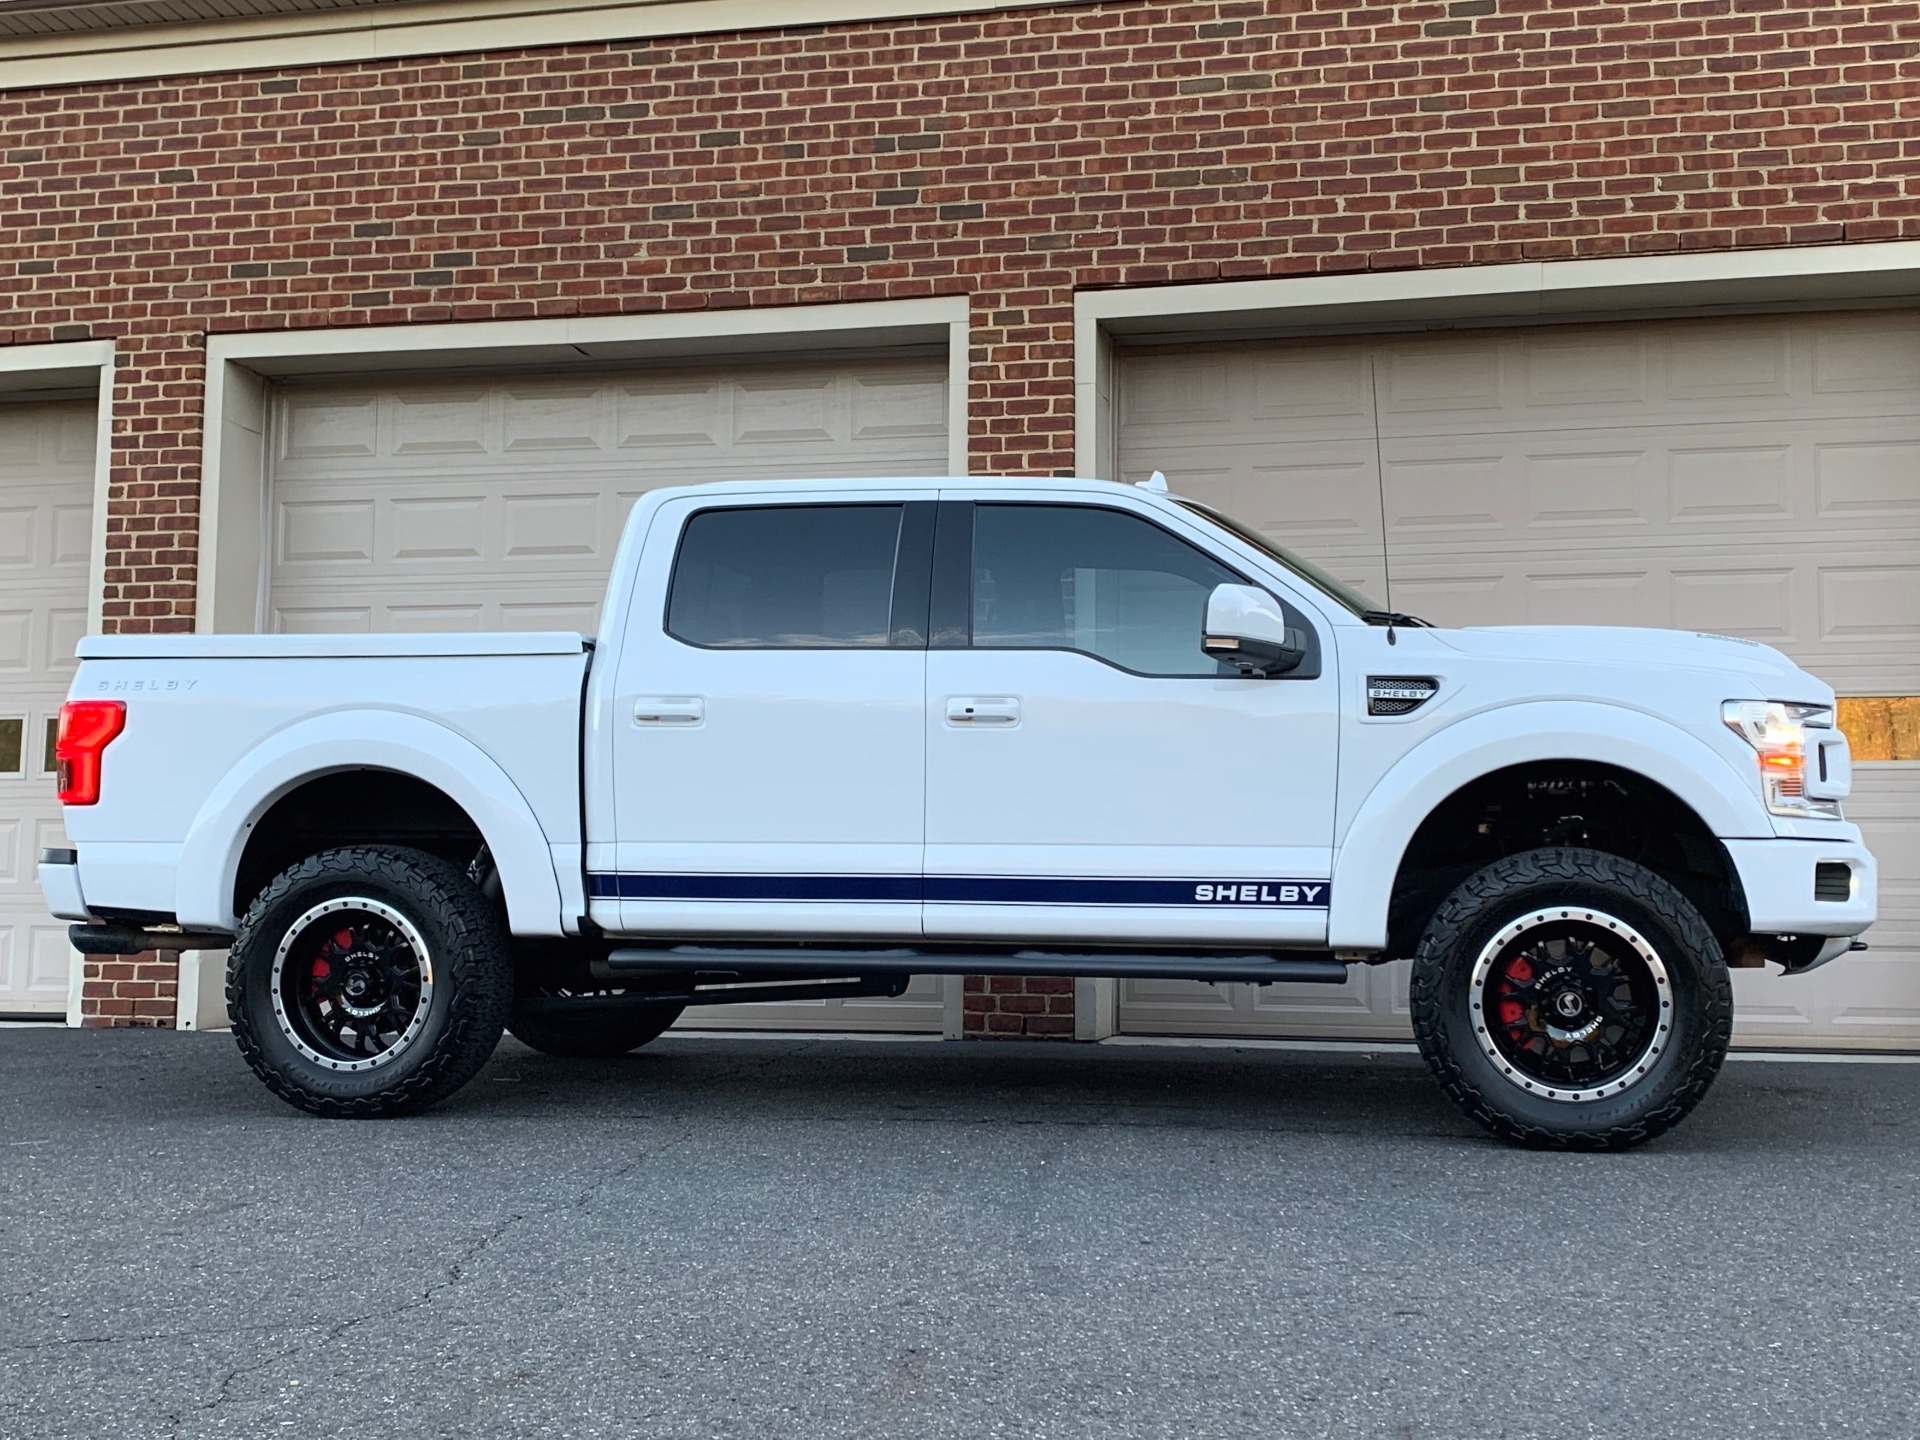 Used-2018-Ford-F-150-SHELBY